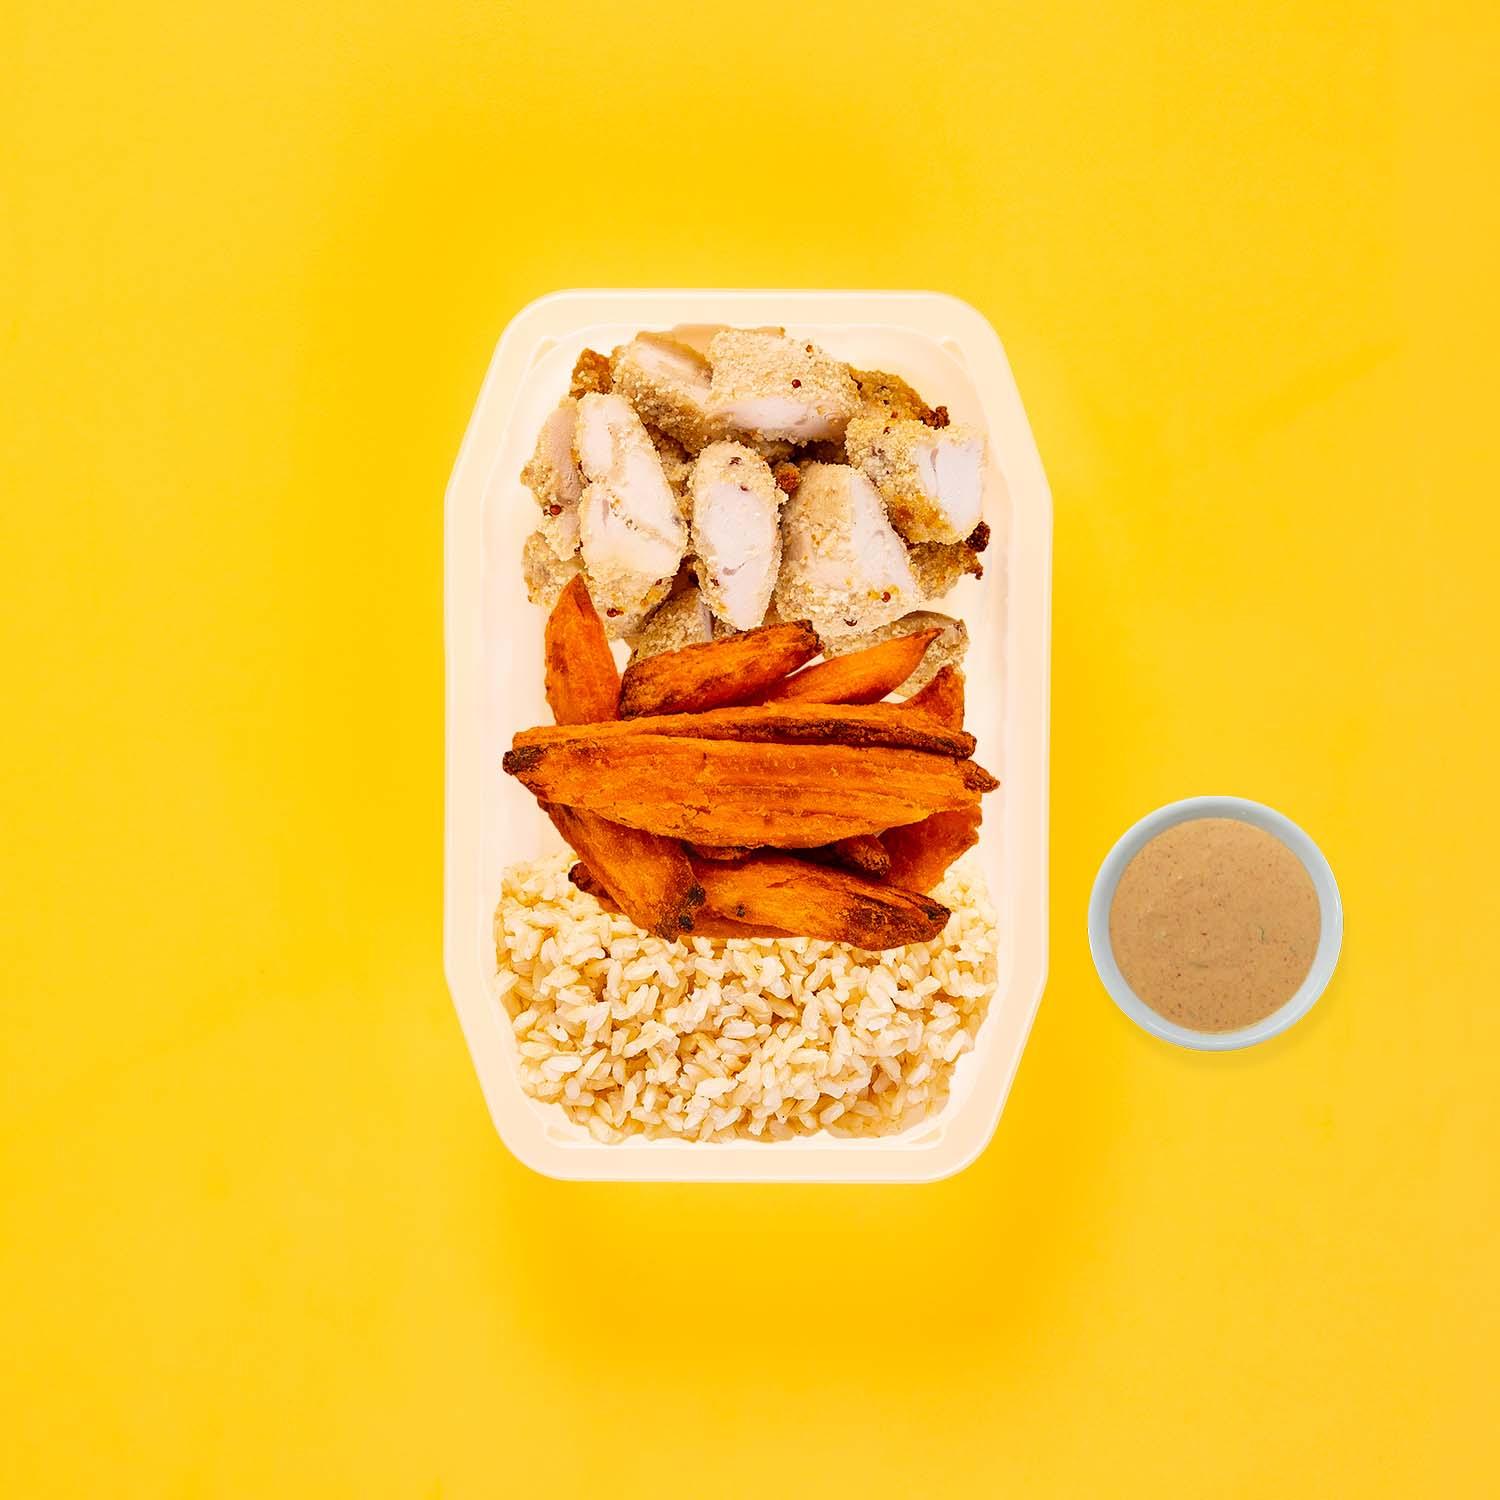 50g Quinoa Chicken Tenders 200g Sweet Potato Wedges 200g Brown Rice Butter Chicken Sauce